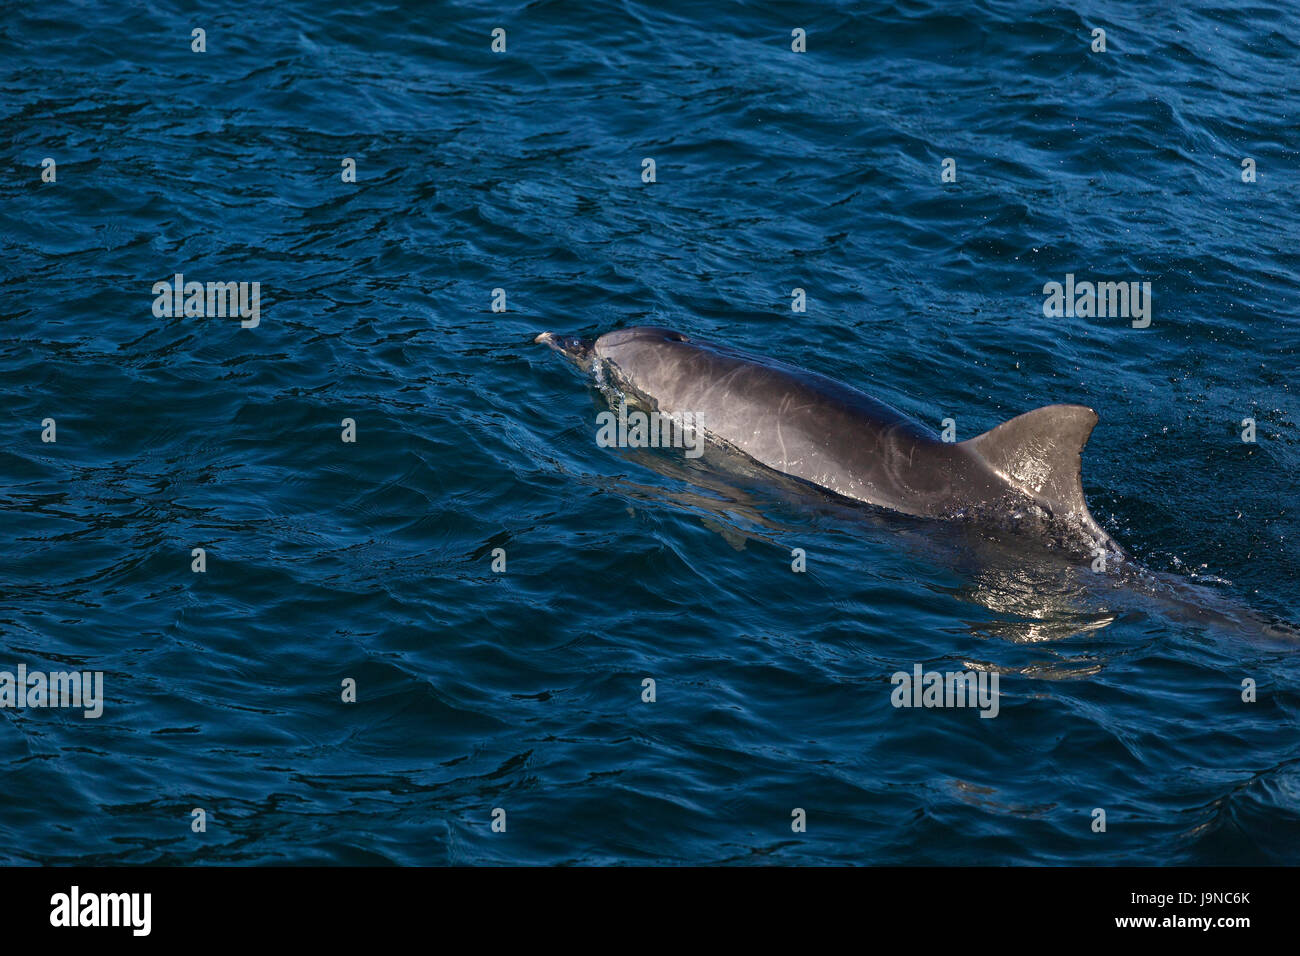 Dolphin in Nelson Bay, Australia. - Stock Image